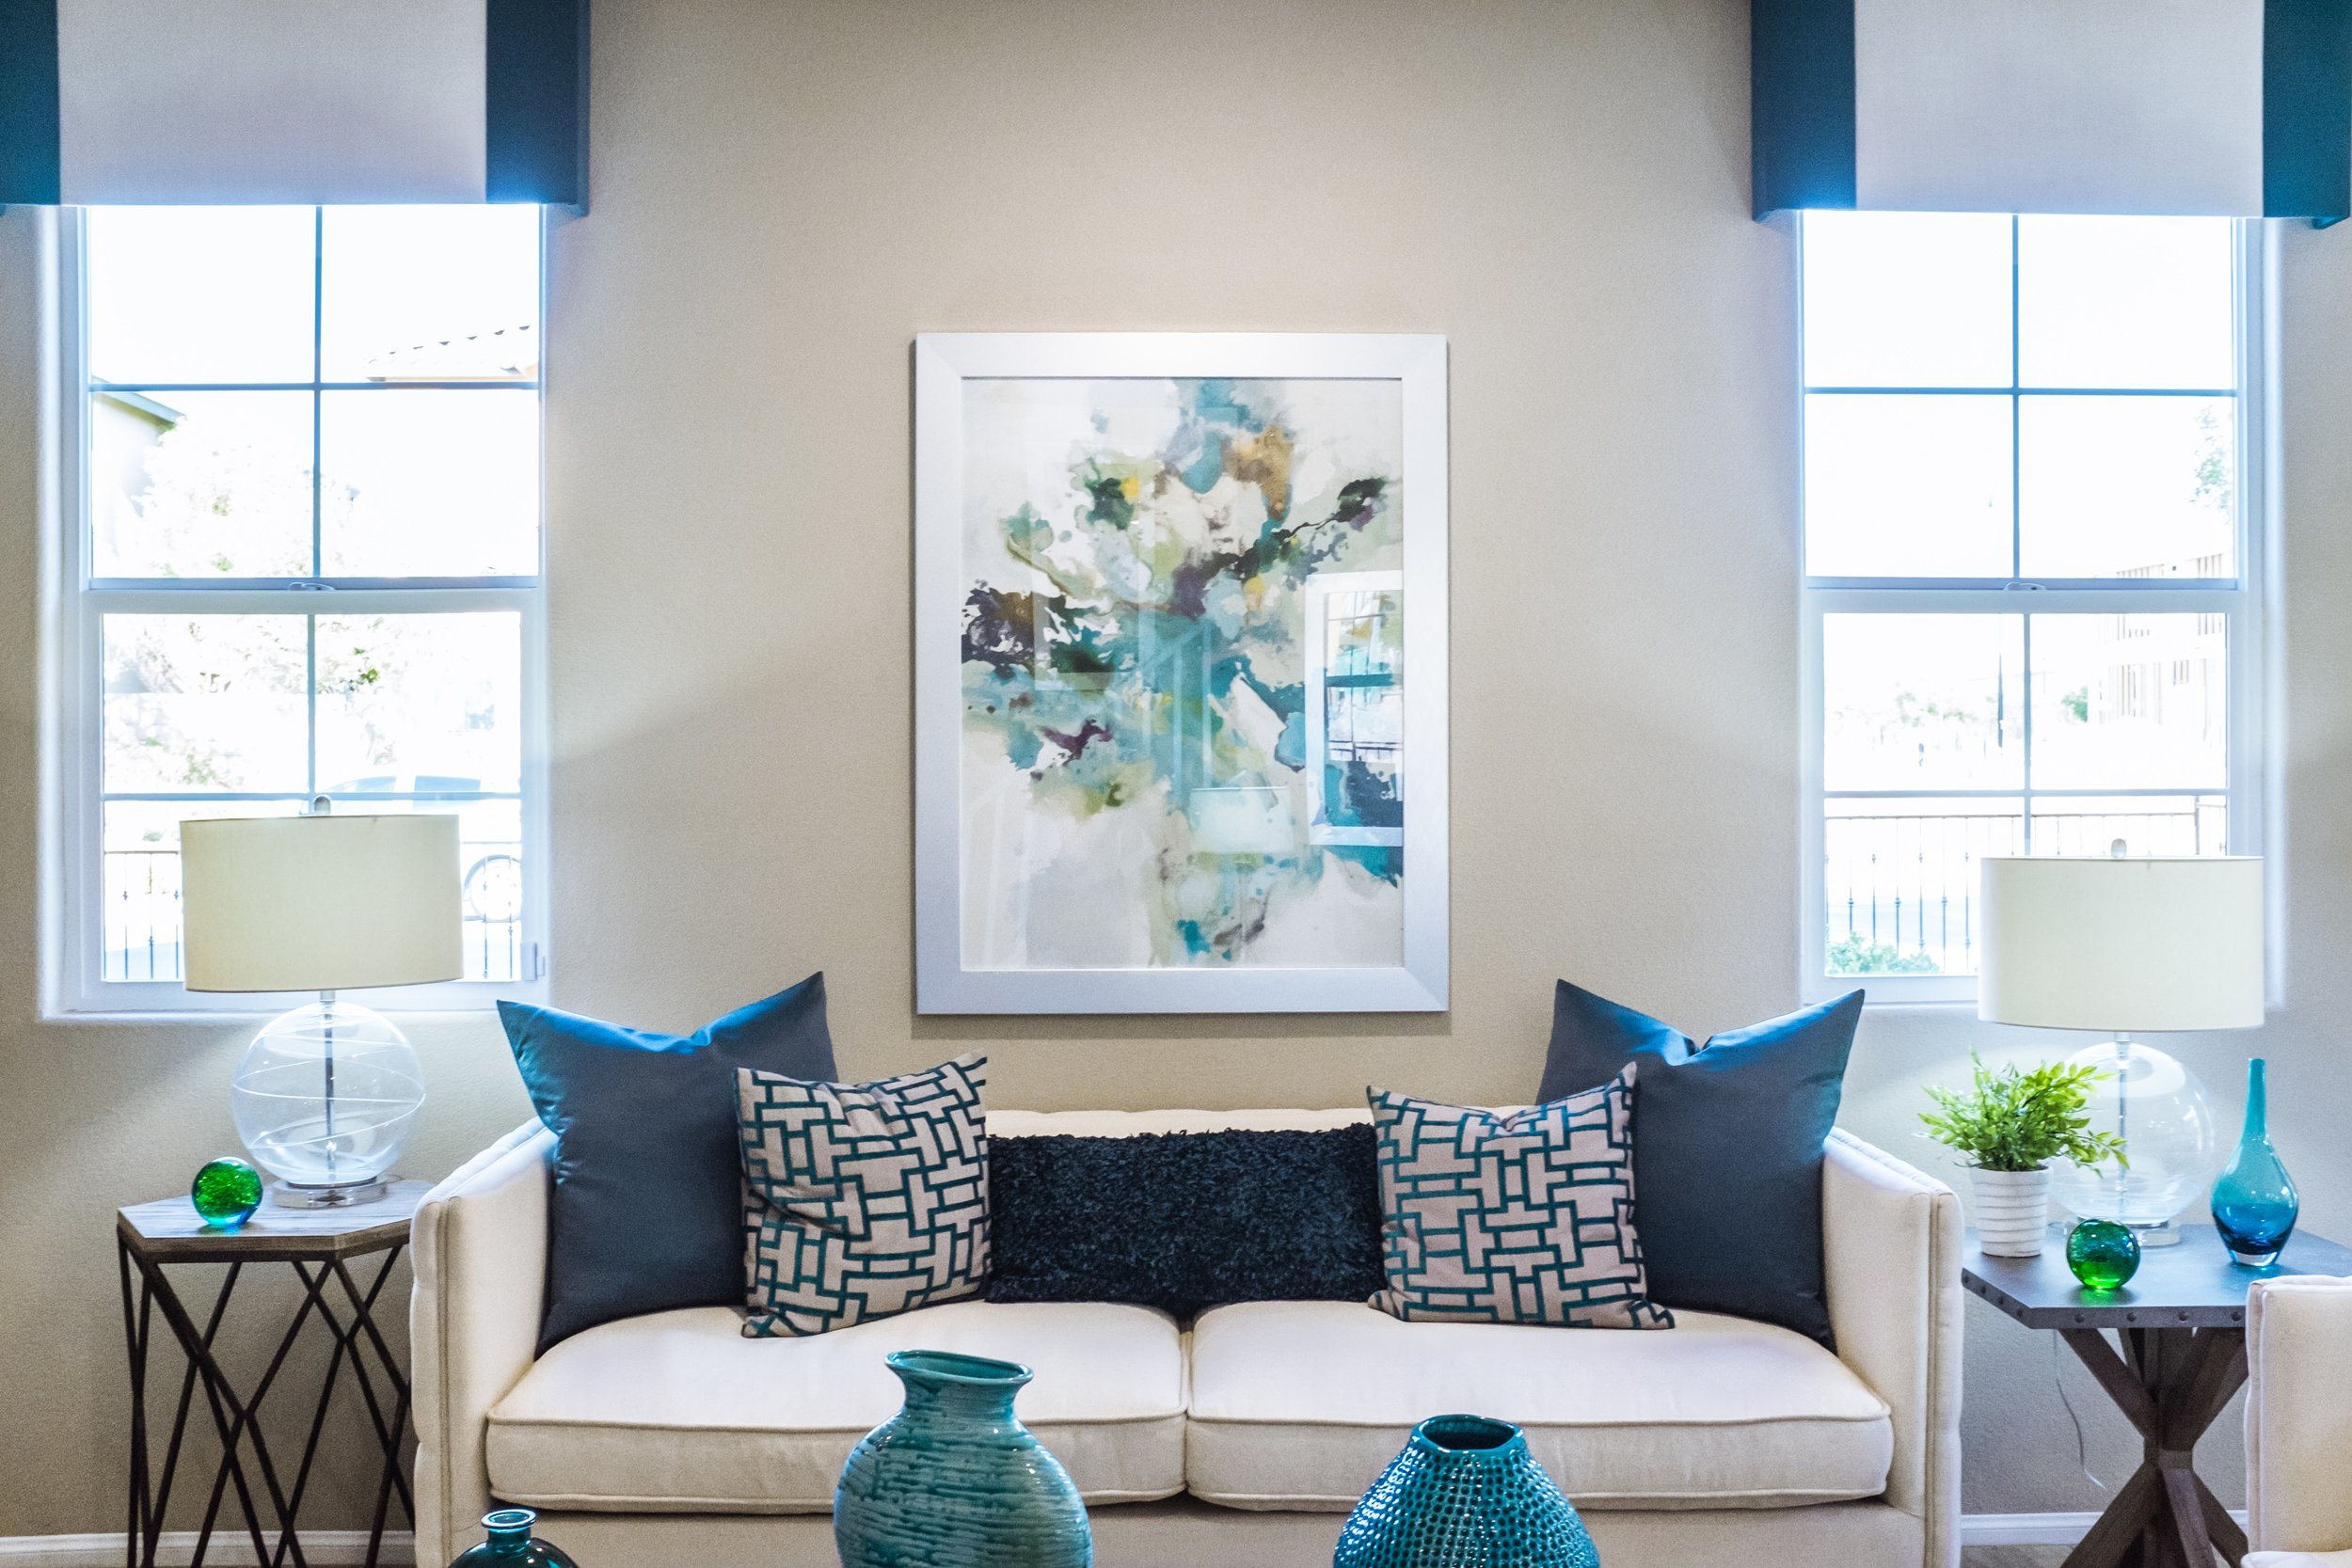 The accessories in this room are a great example of using a monochromatic color scheme. The varied shades of blue paired with the various textures offer a balanced space that is visually interesting.